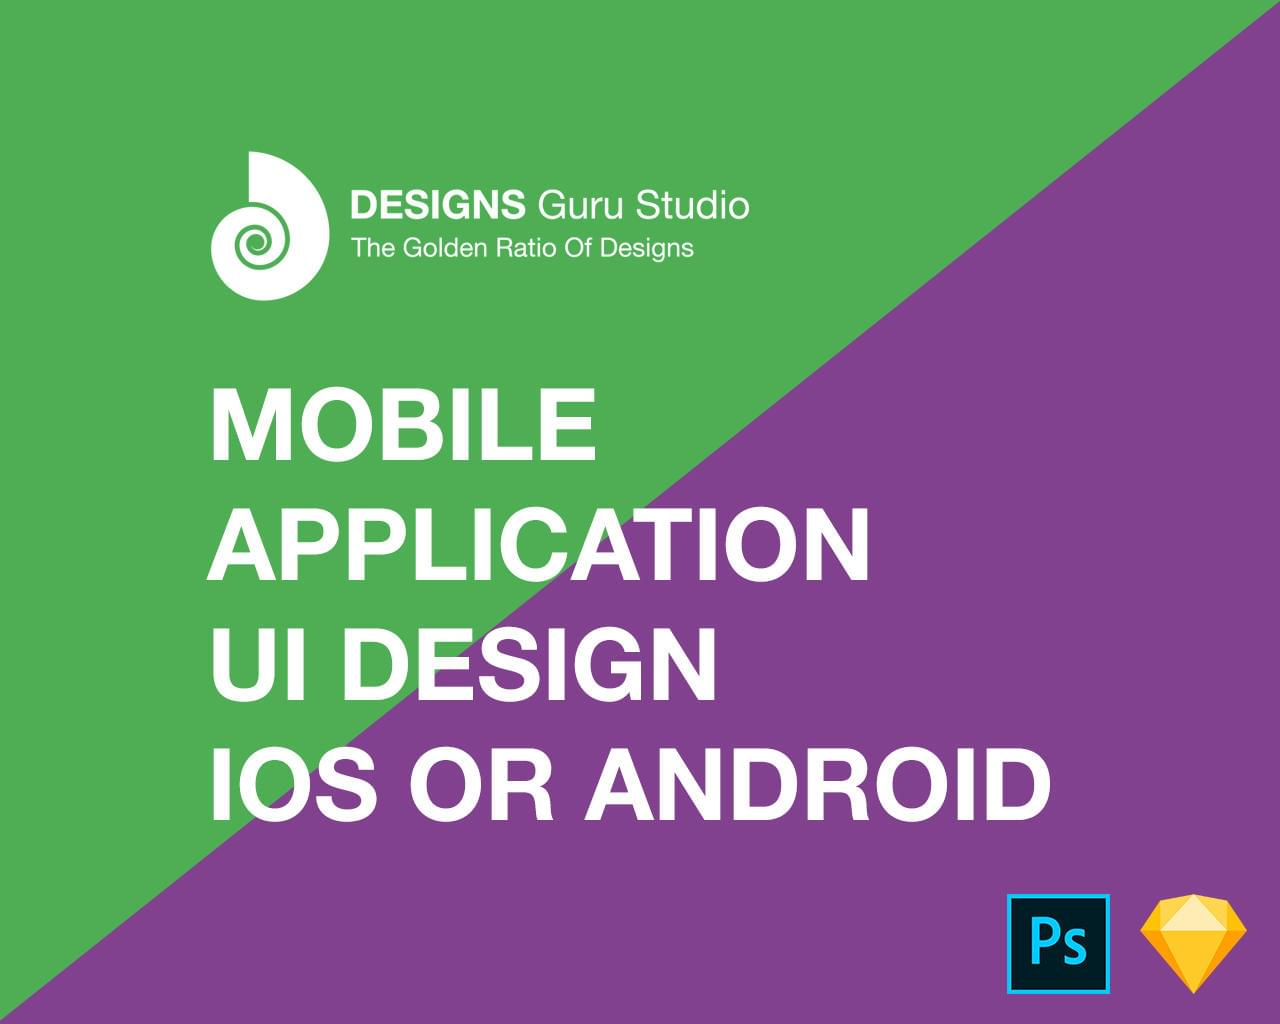 Mobile Application UI Design ( iOS OR Android ) by designsgurustudio - 111525